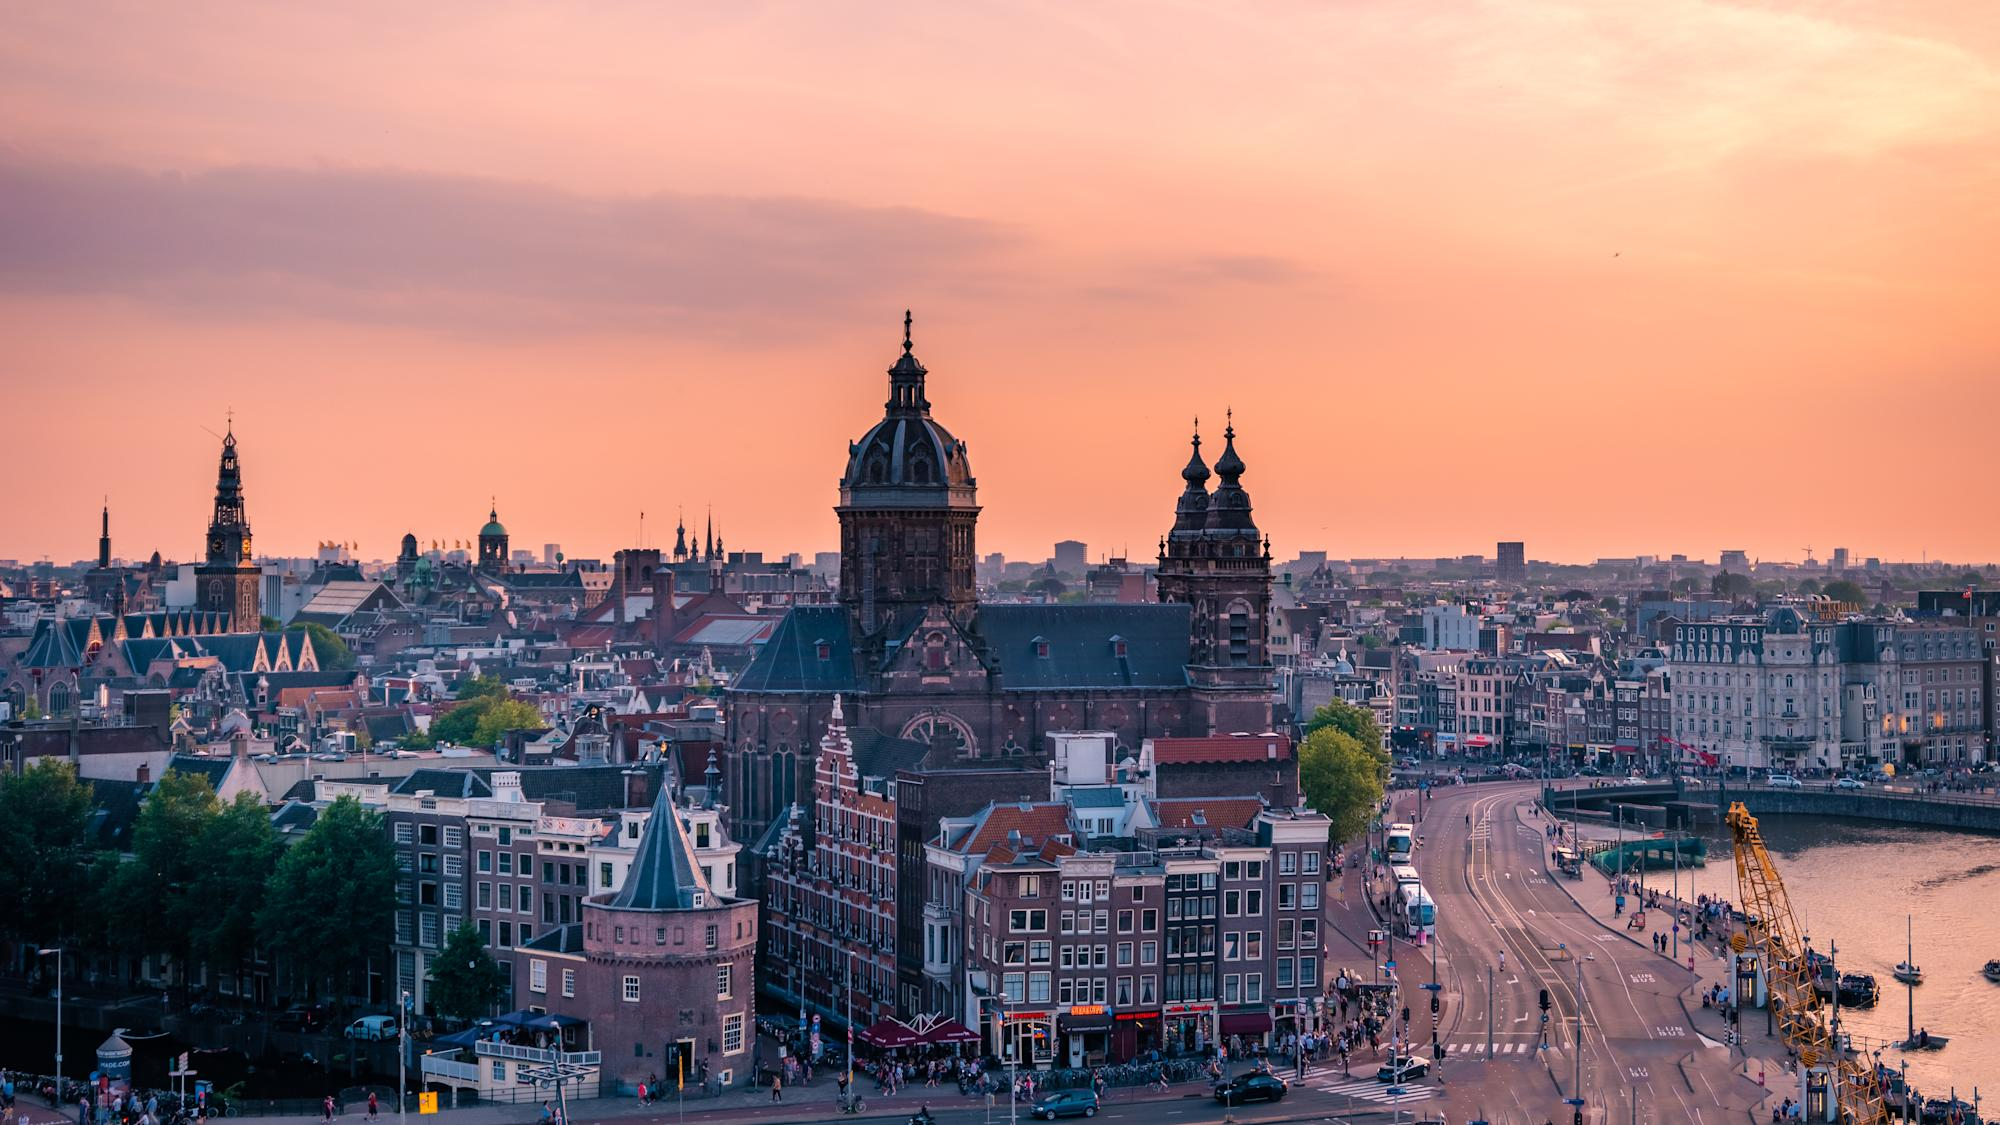 Amsterdam overtakes London as Europe's share trading hub